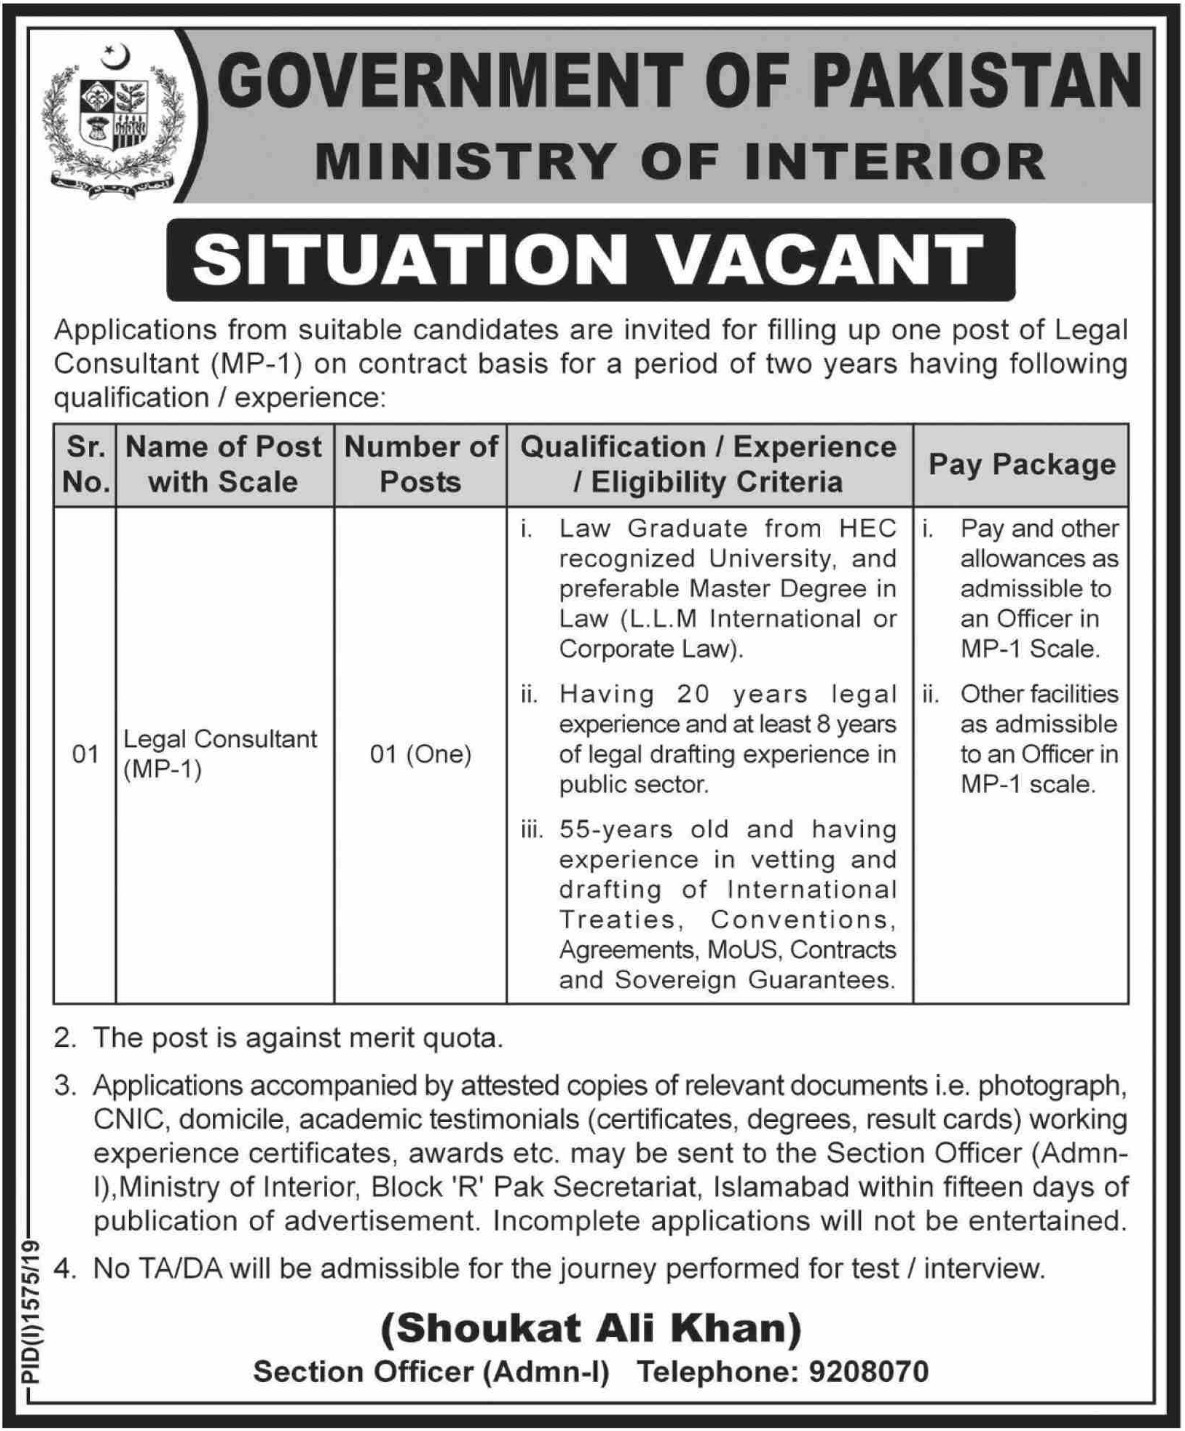 Ministry of Interior Jobs 2019 Government of Pakistan